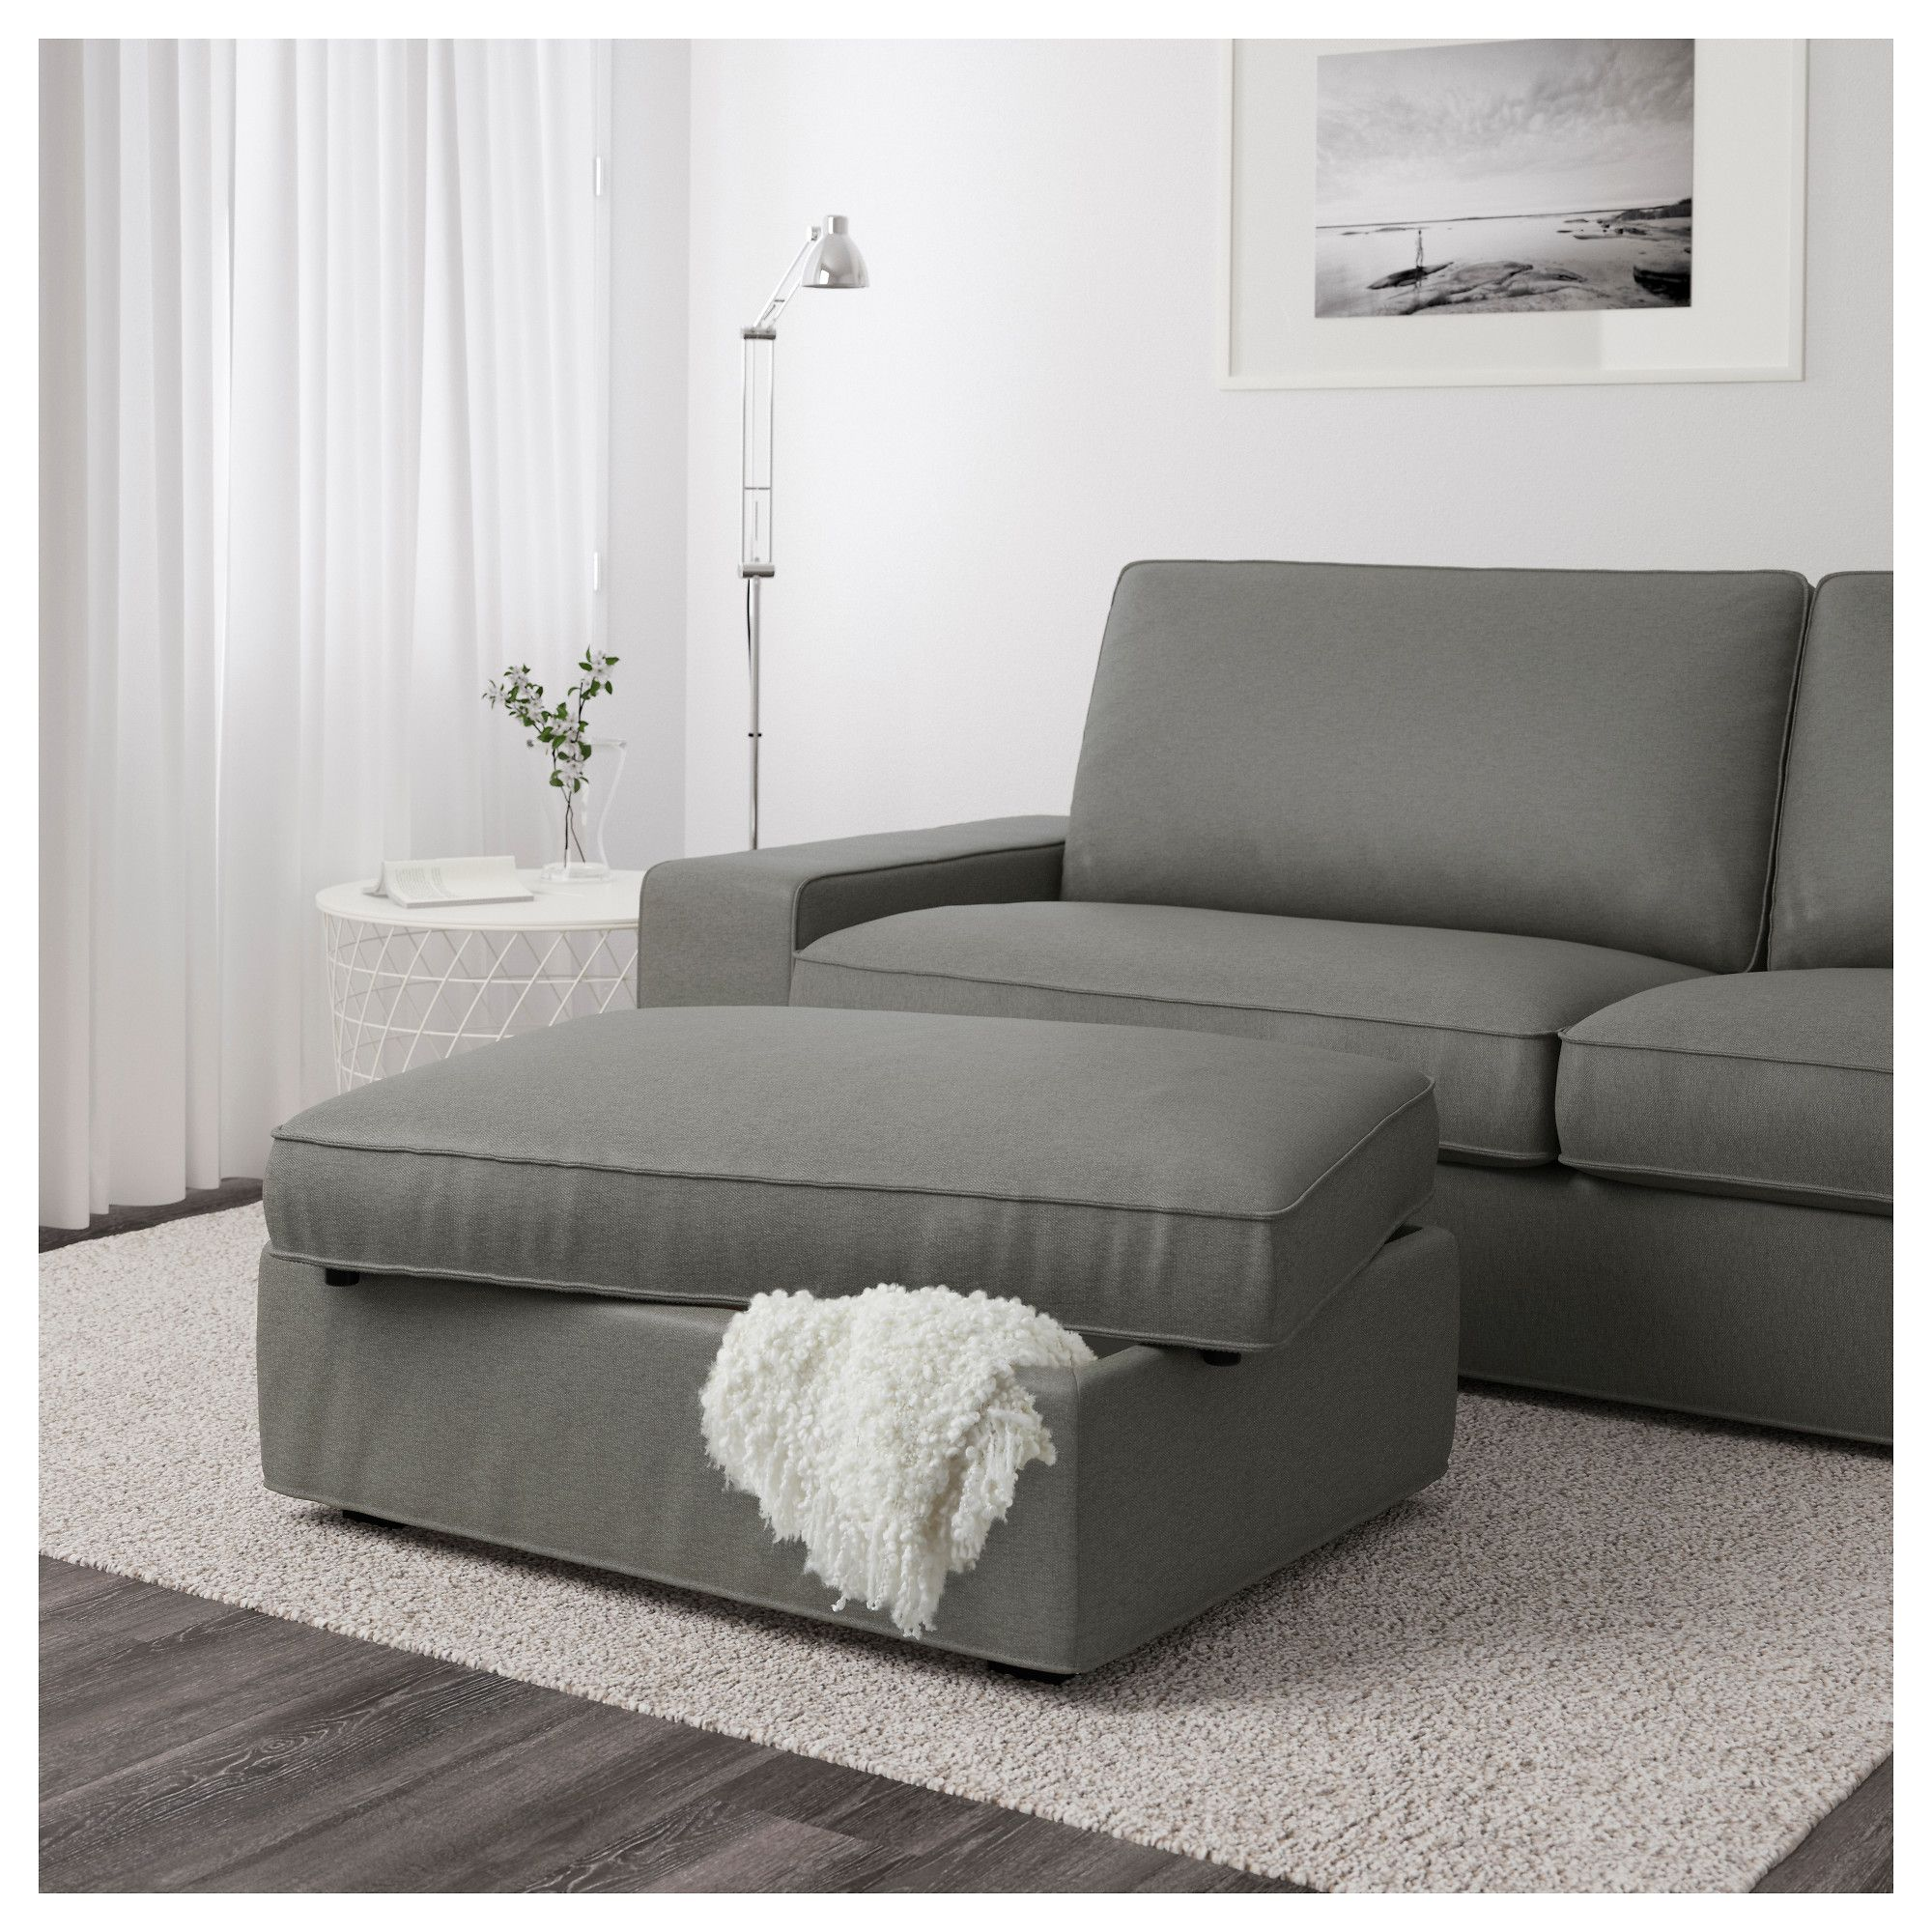 Ikea Canape Kivik Ikea - Kivik Footstool With Storage Borred Gray-green